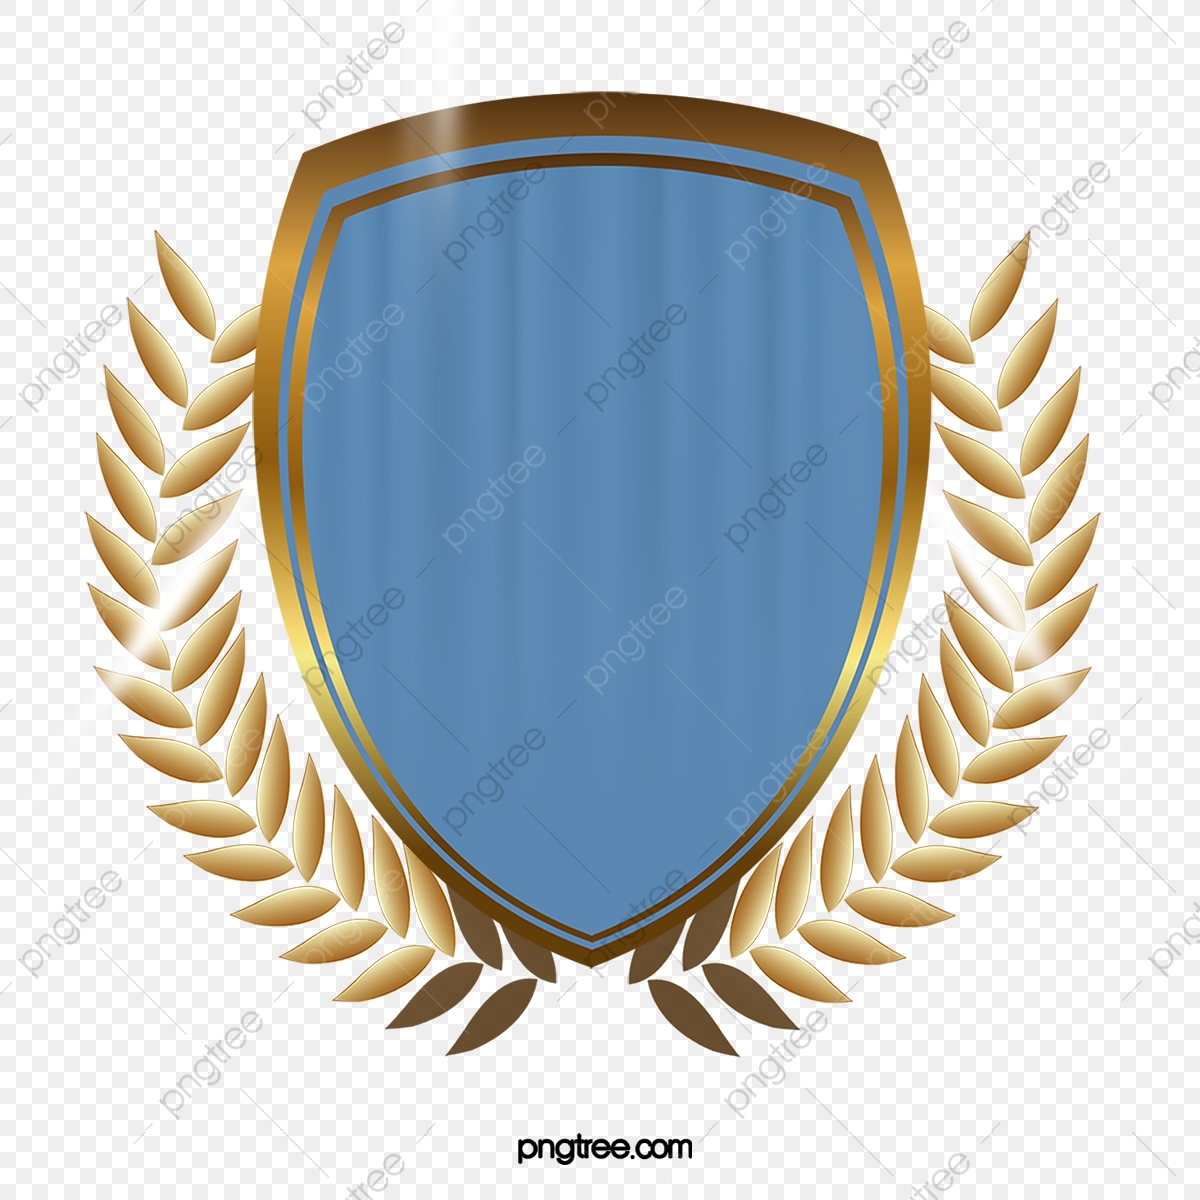 Shield, Shield Clipart, Olive Shield, Creative Shield PNG